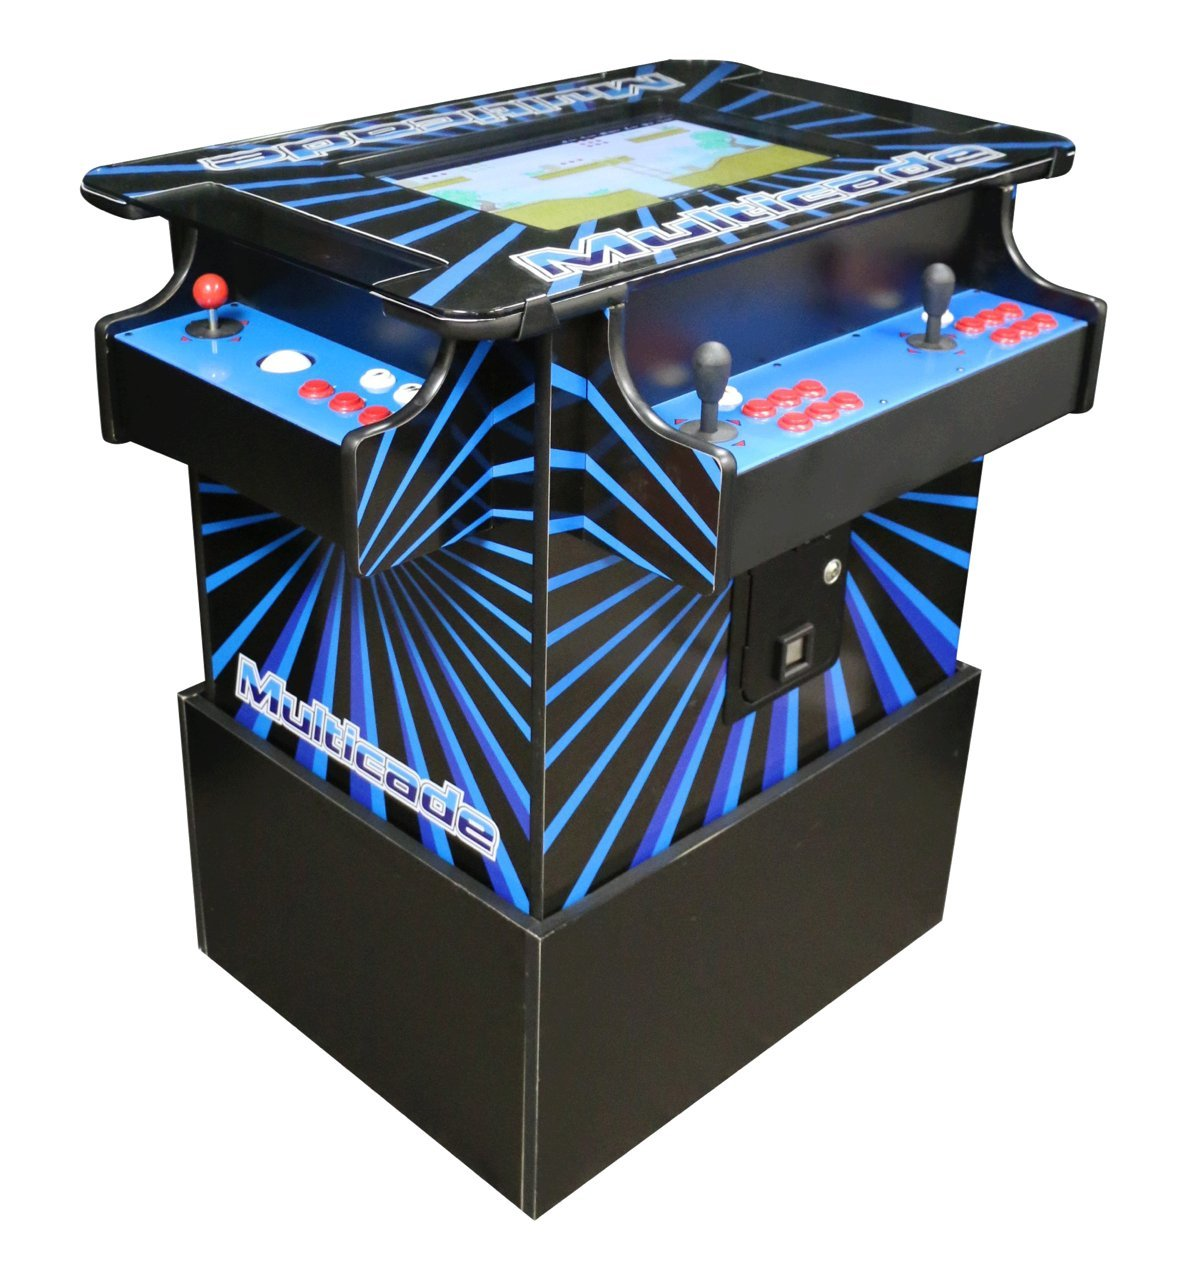 Ultimate Arcade Cabinet w Trackballs. Professionally Made Commercial Quality LED JAMMA Plug and Play Ready by Proarcades, LLC